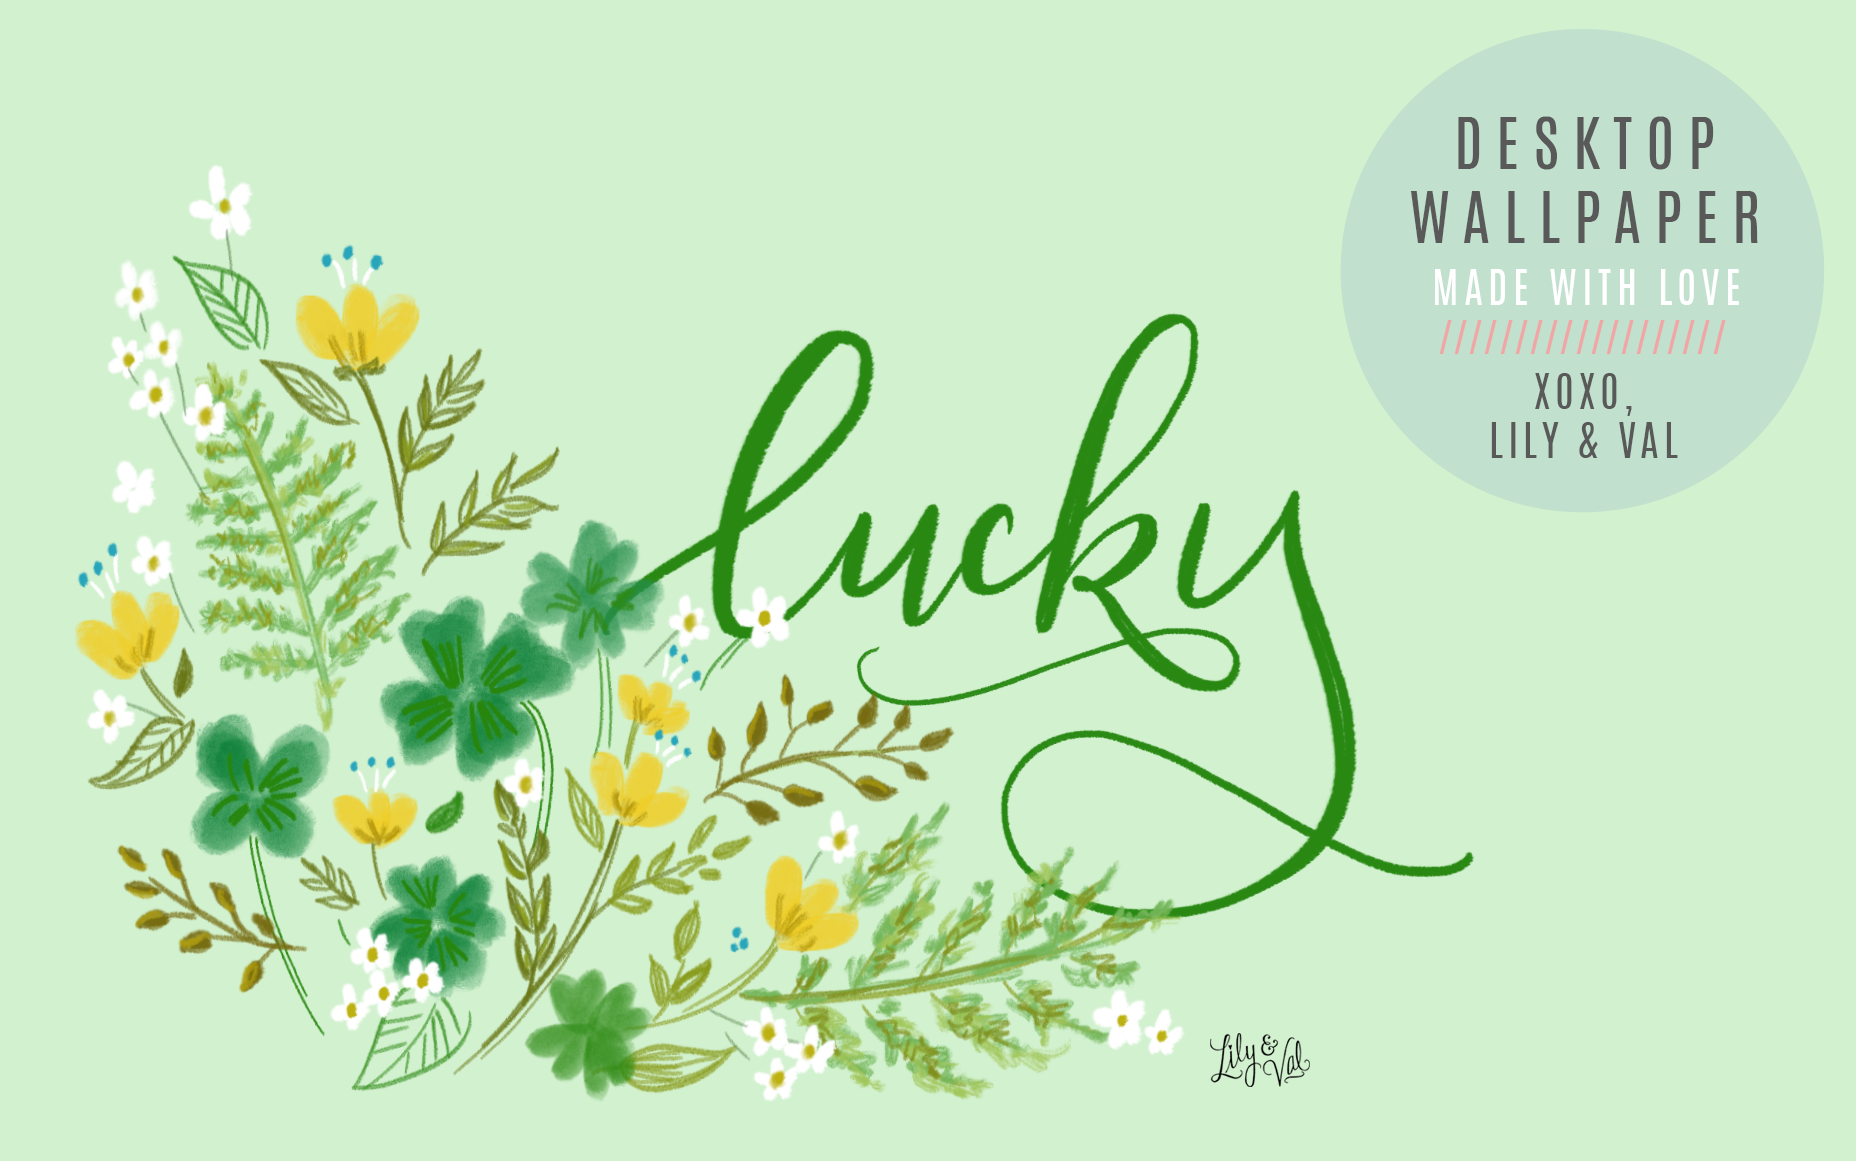 Lily Val Free Desktop Download Wallpaper For March With Shades Of Green And The Word